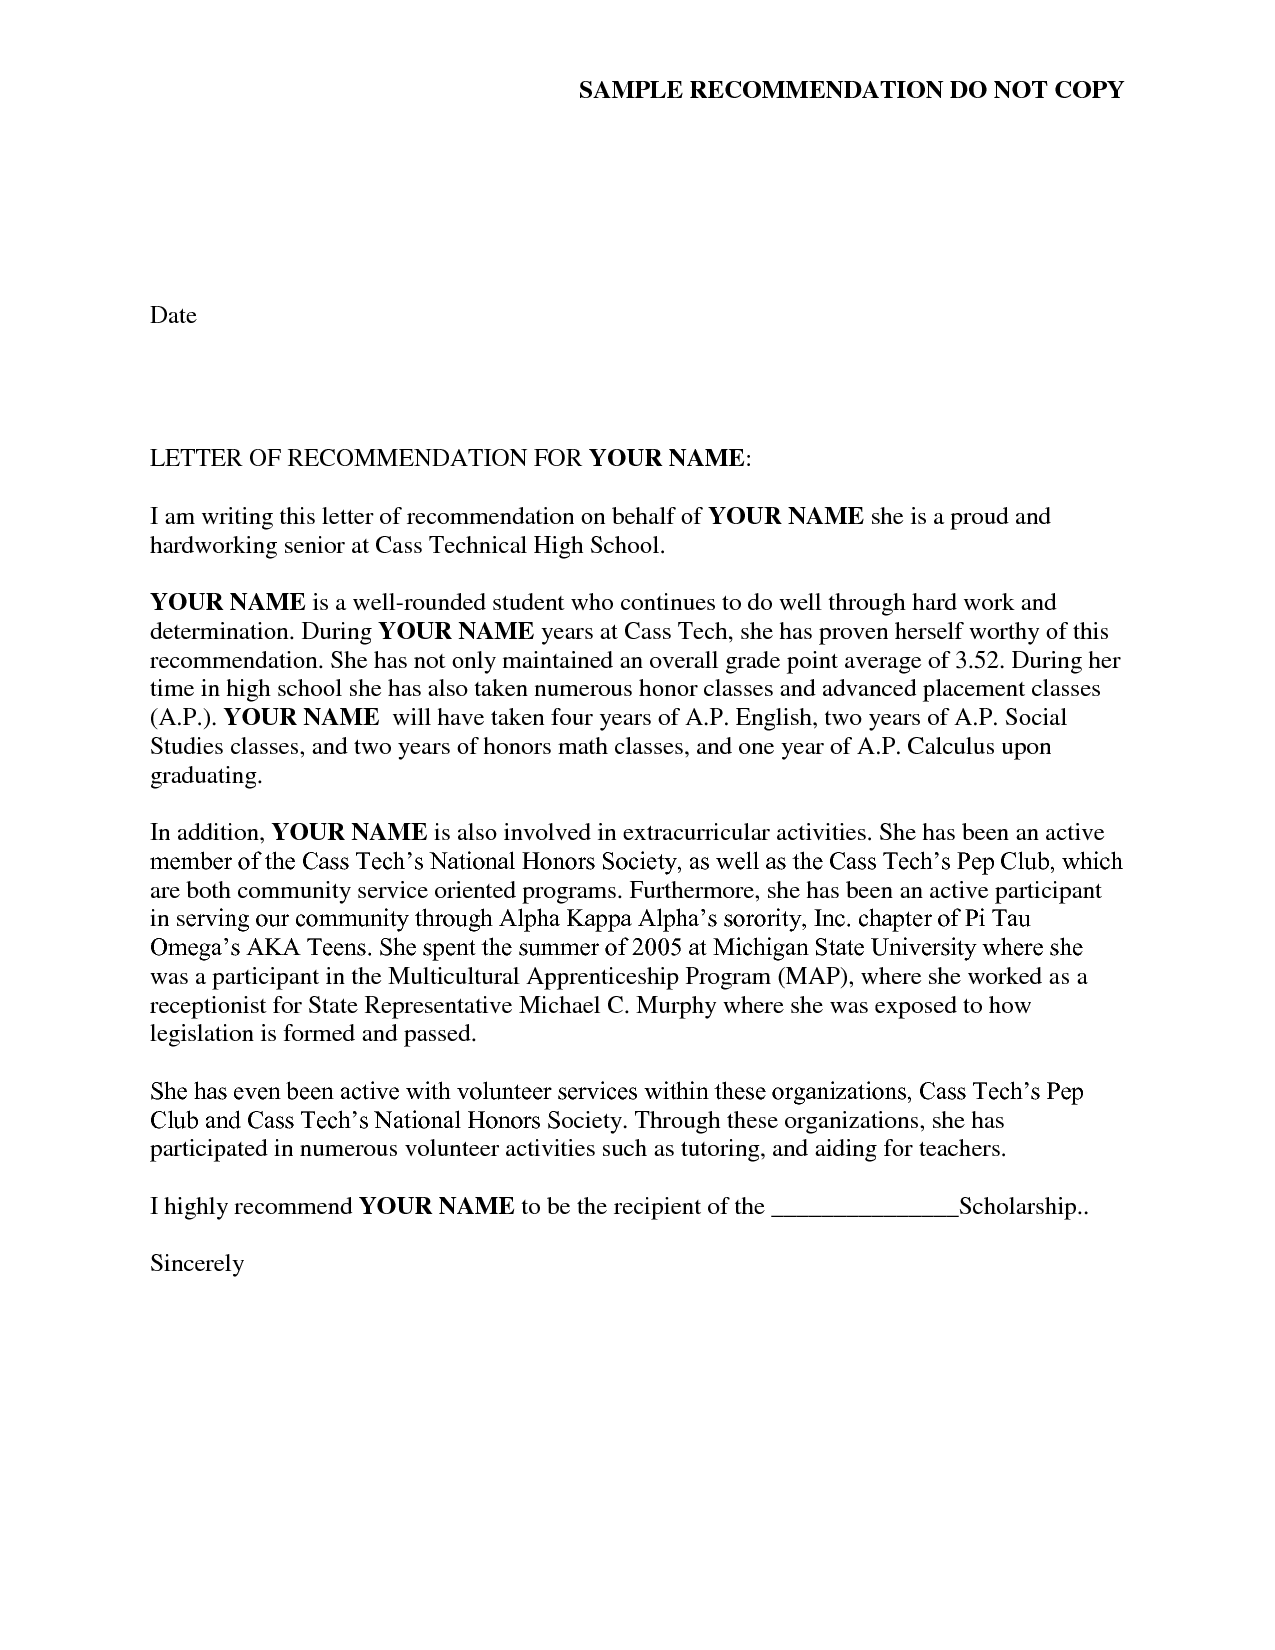 Reference Letter Of Recommendation Sample | Sample Alpha Kappa Alpha Recommendation  Letter